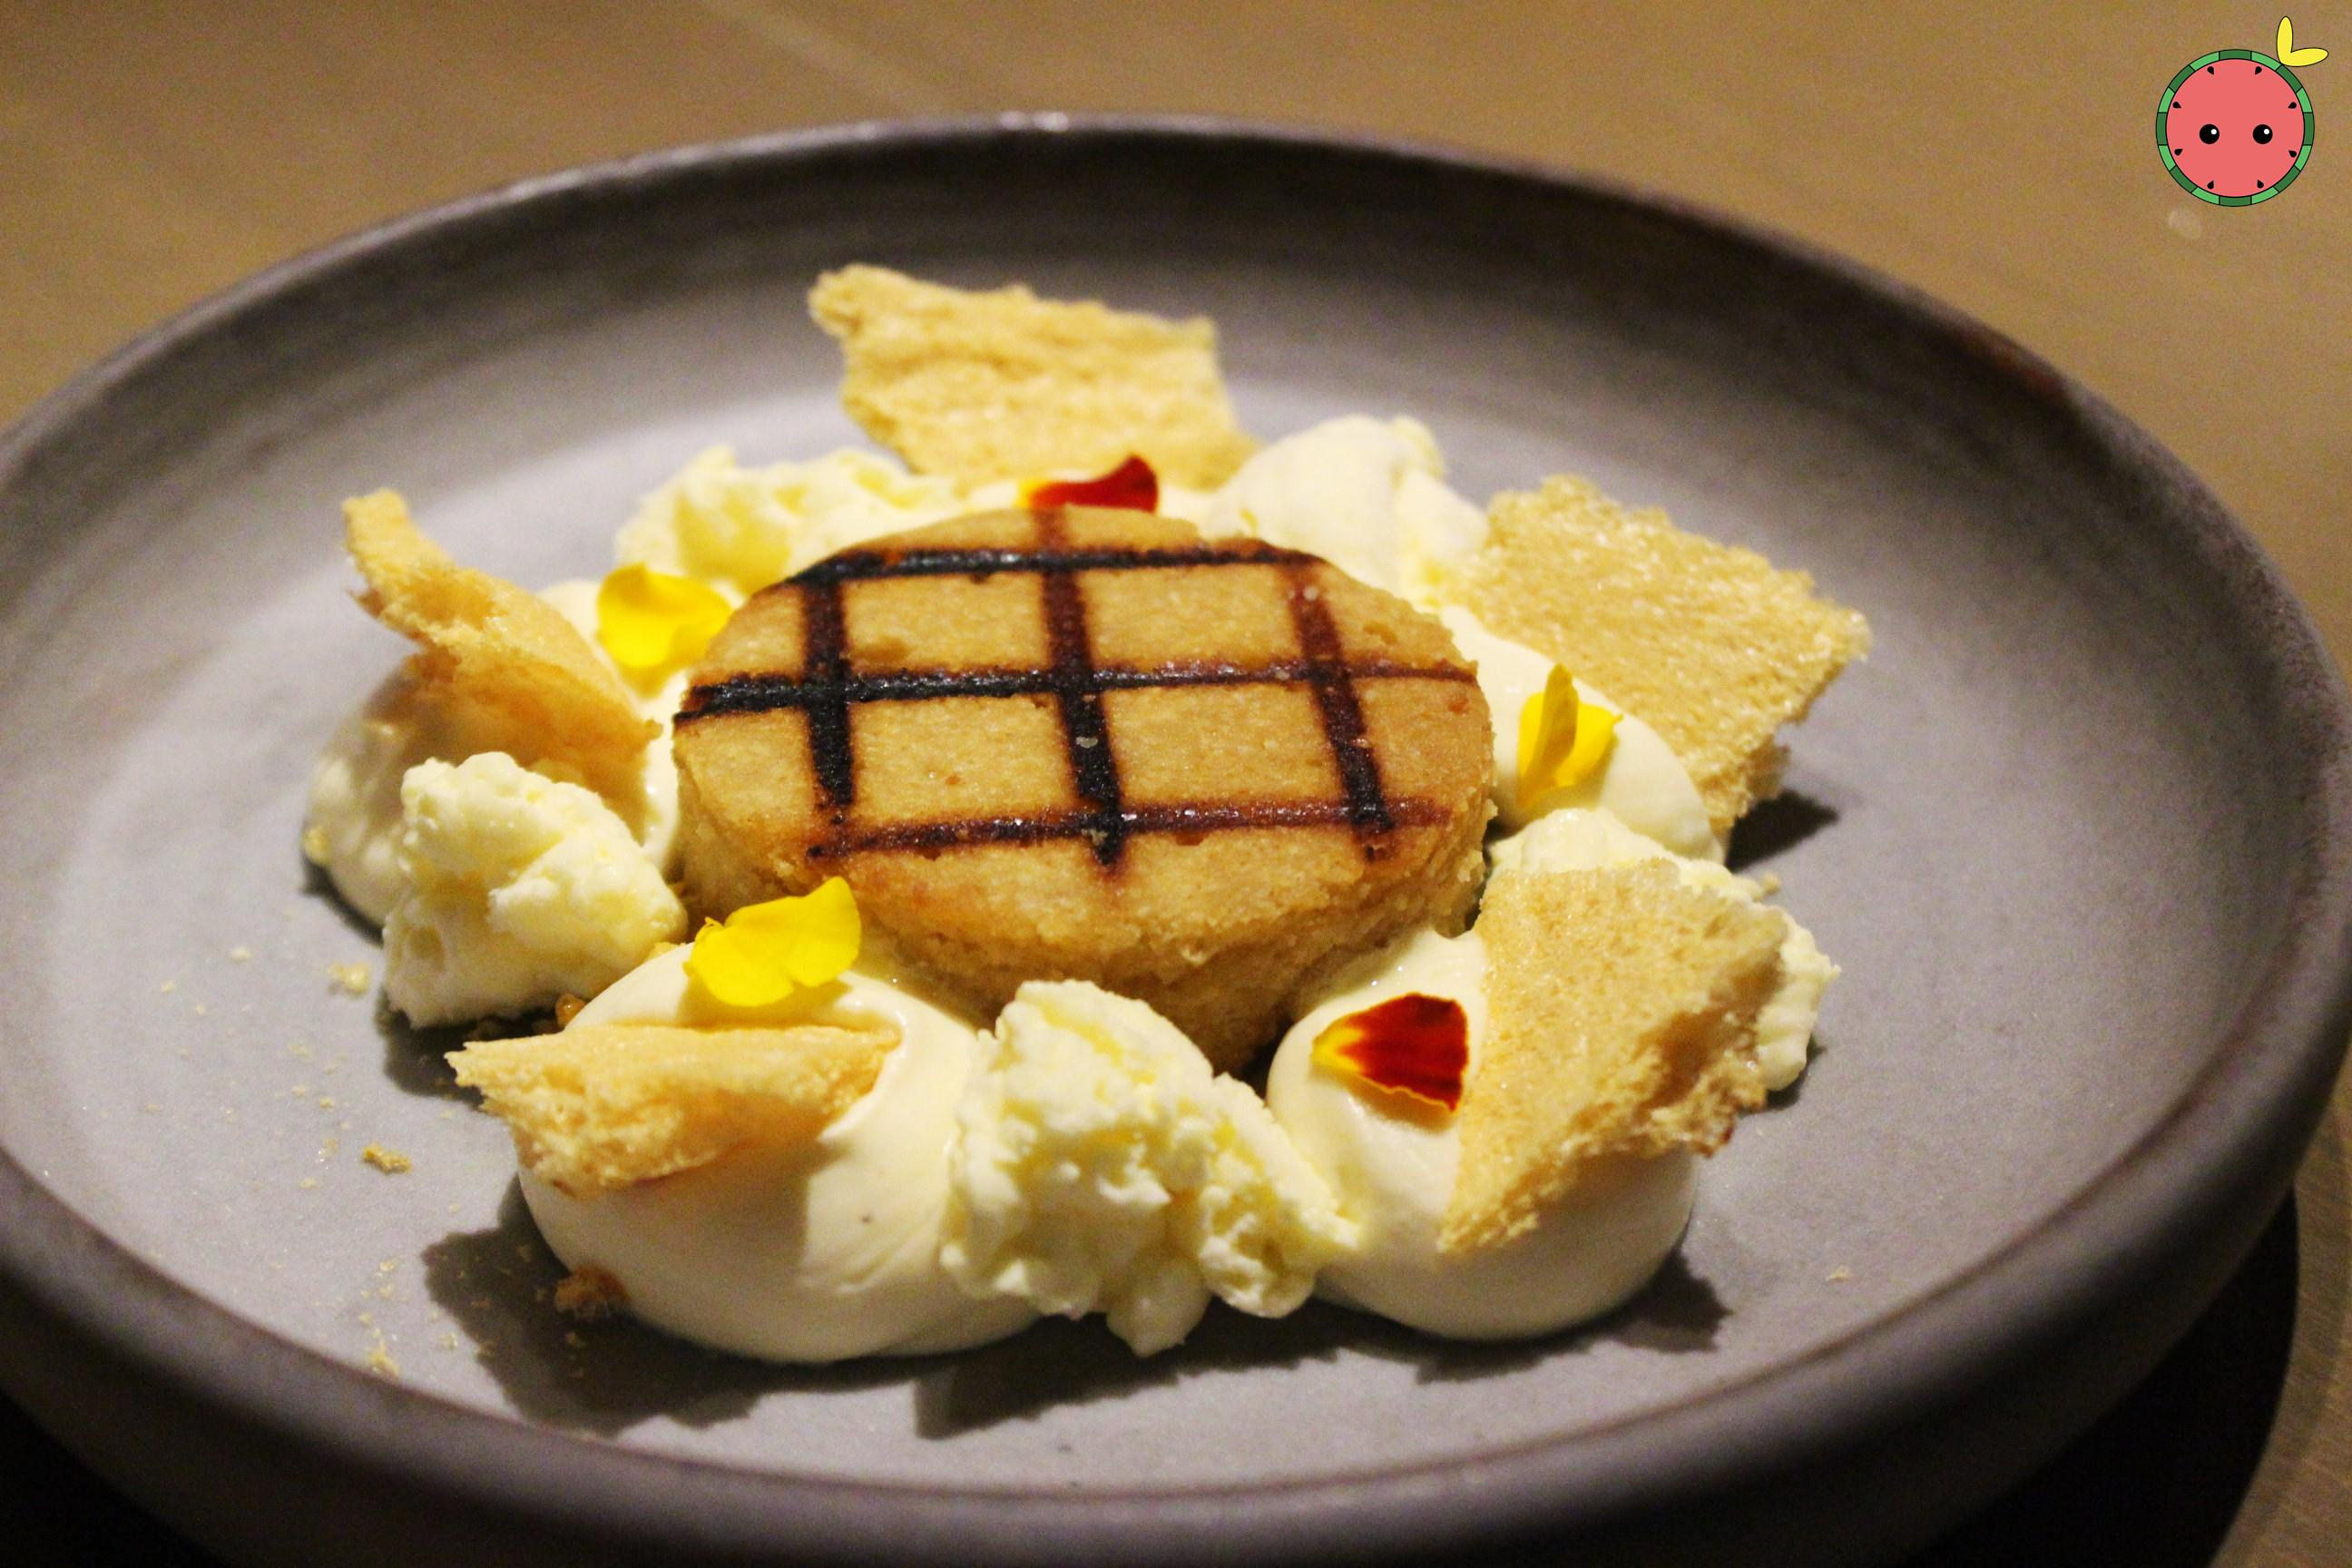 Passion Fruit - Grilled Financier, Jasmine Mascarpone, HoneyComb